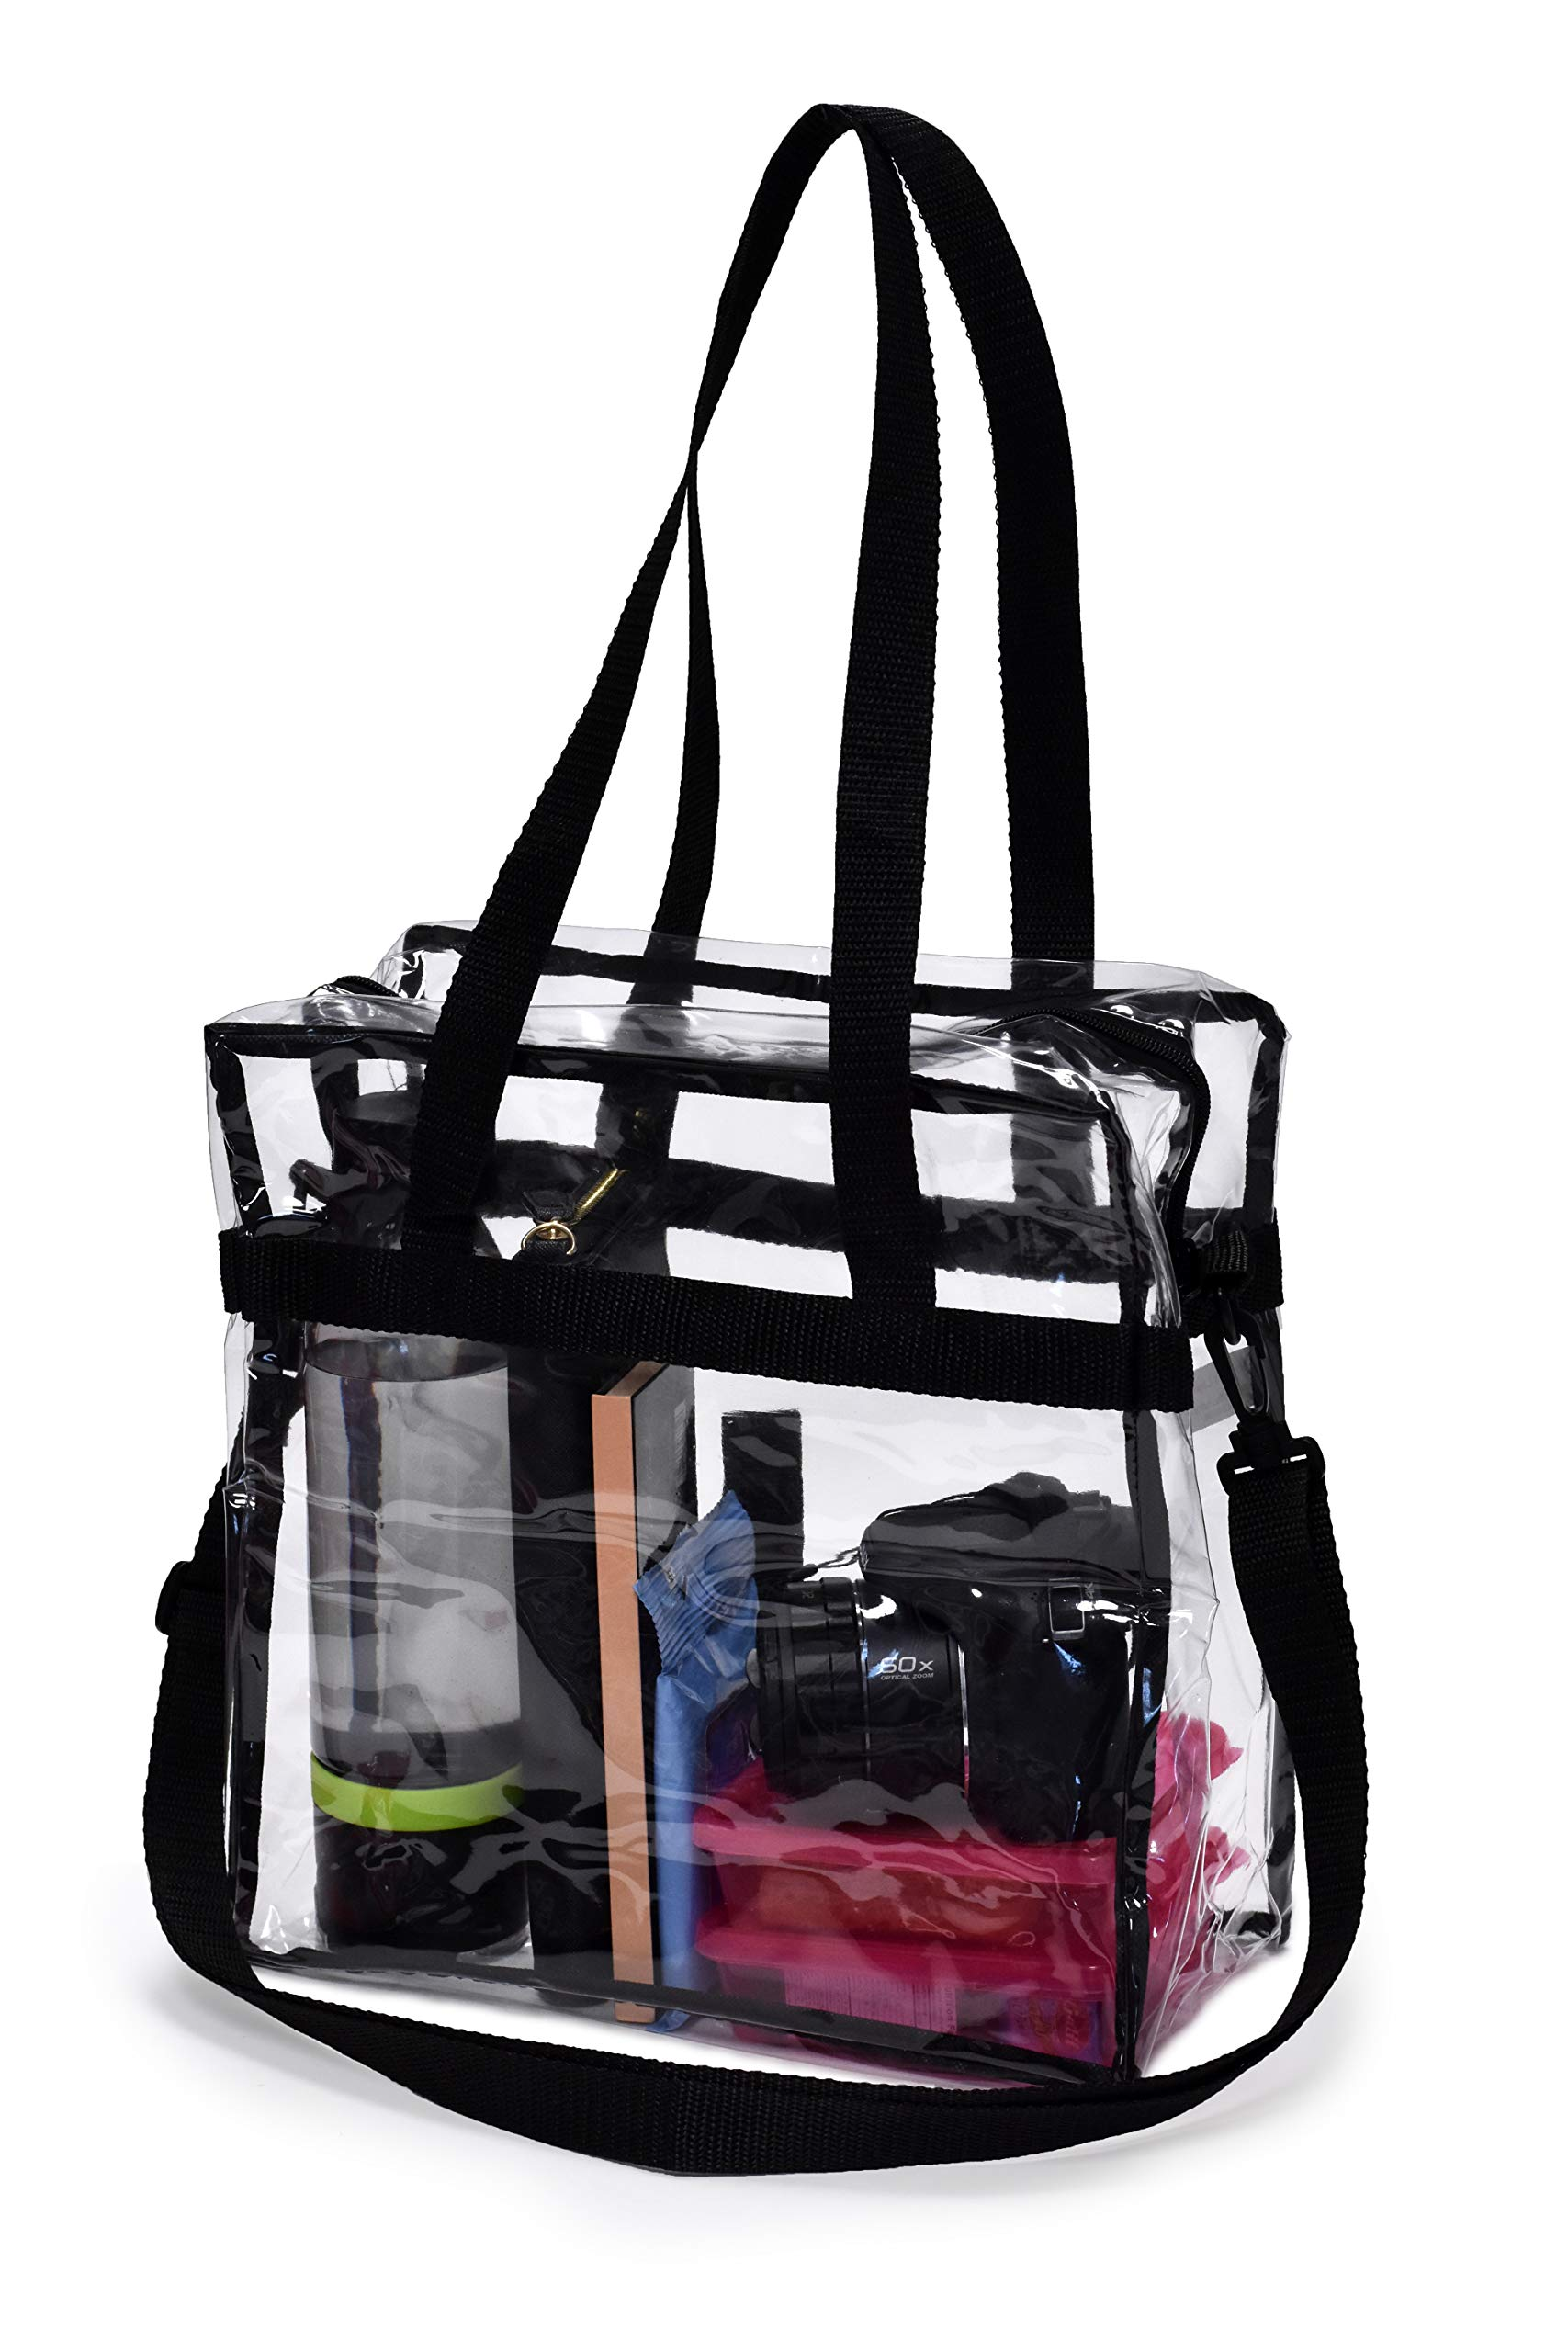 Bagail Nfl And Pga Stadium Approved Clear Tote Bag With Zipper Closure Crossbody